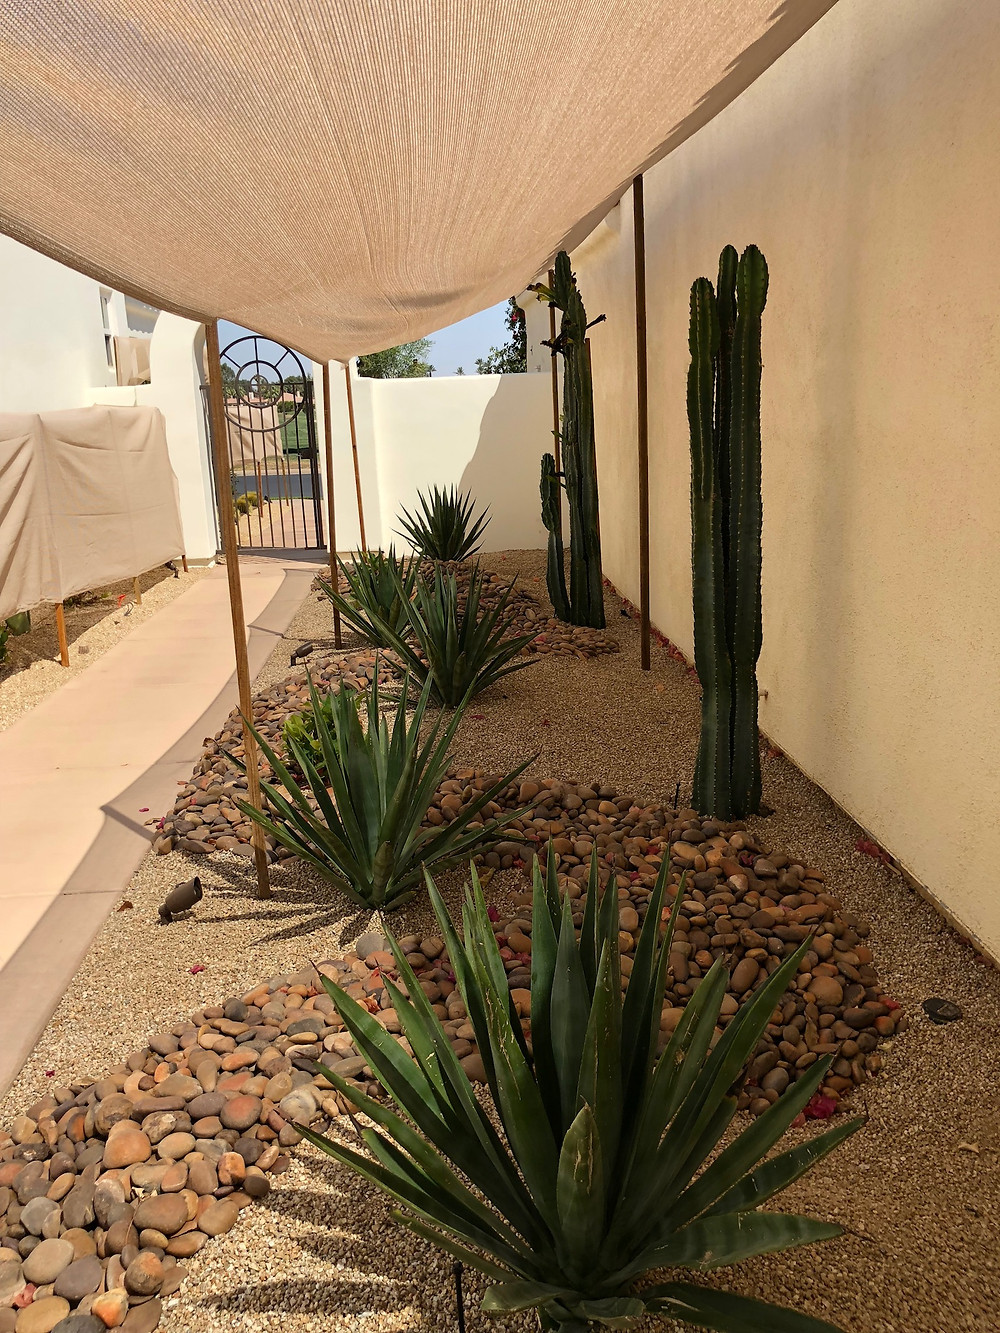 Newly planted agave and cactus under shade covers against a very hot wall